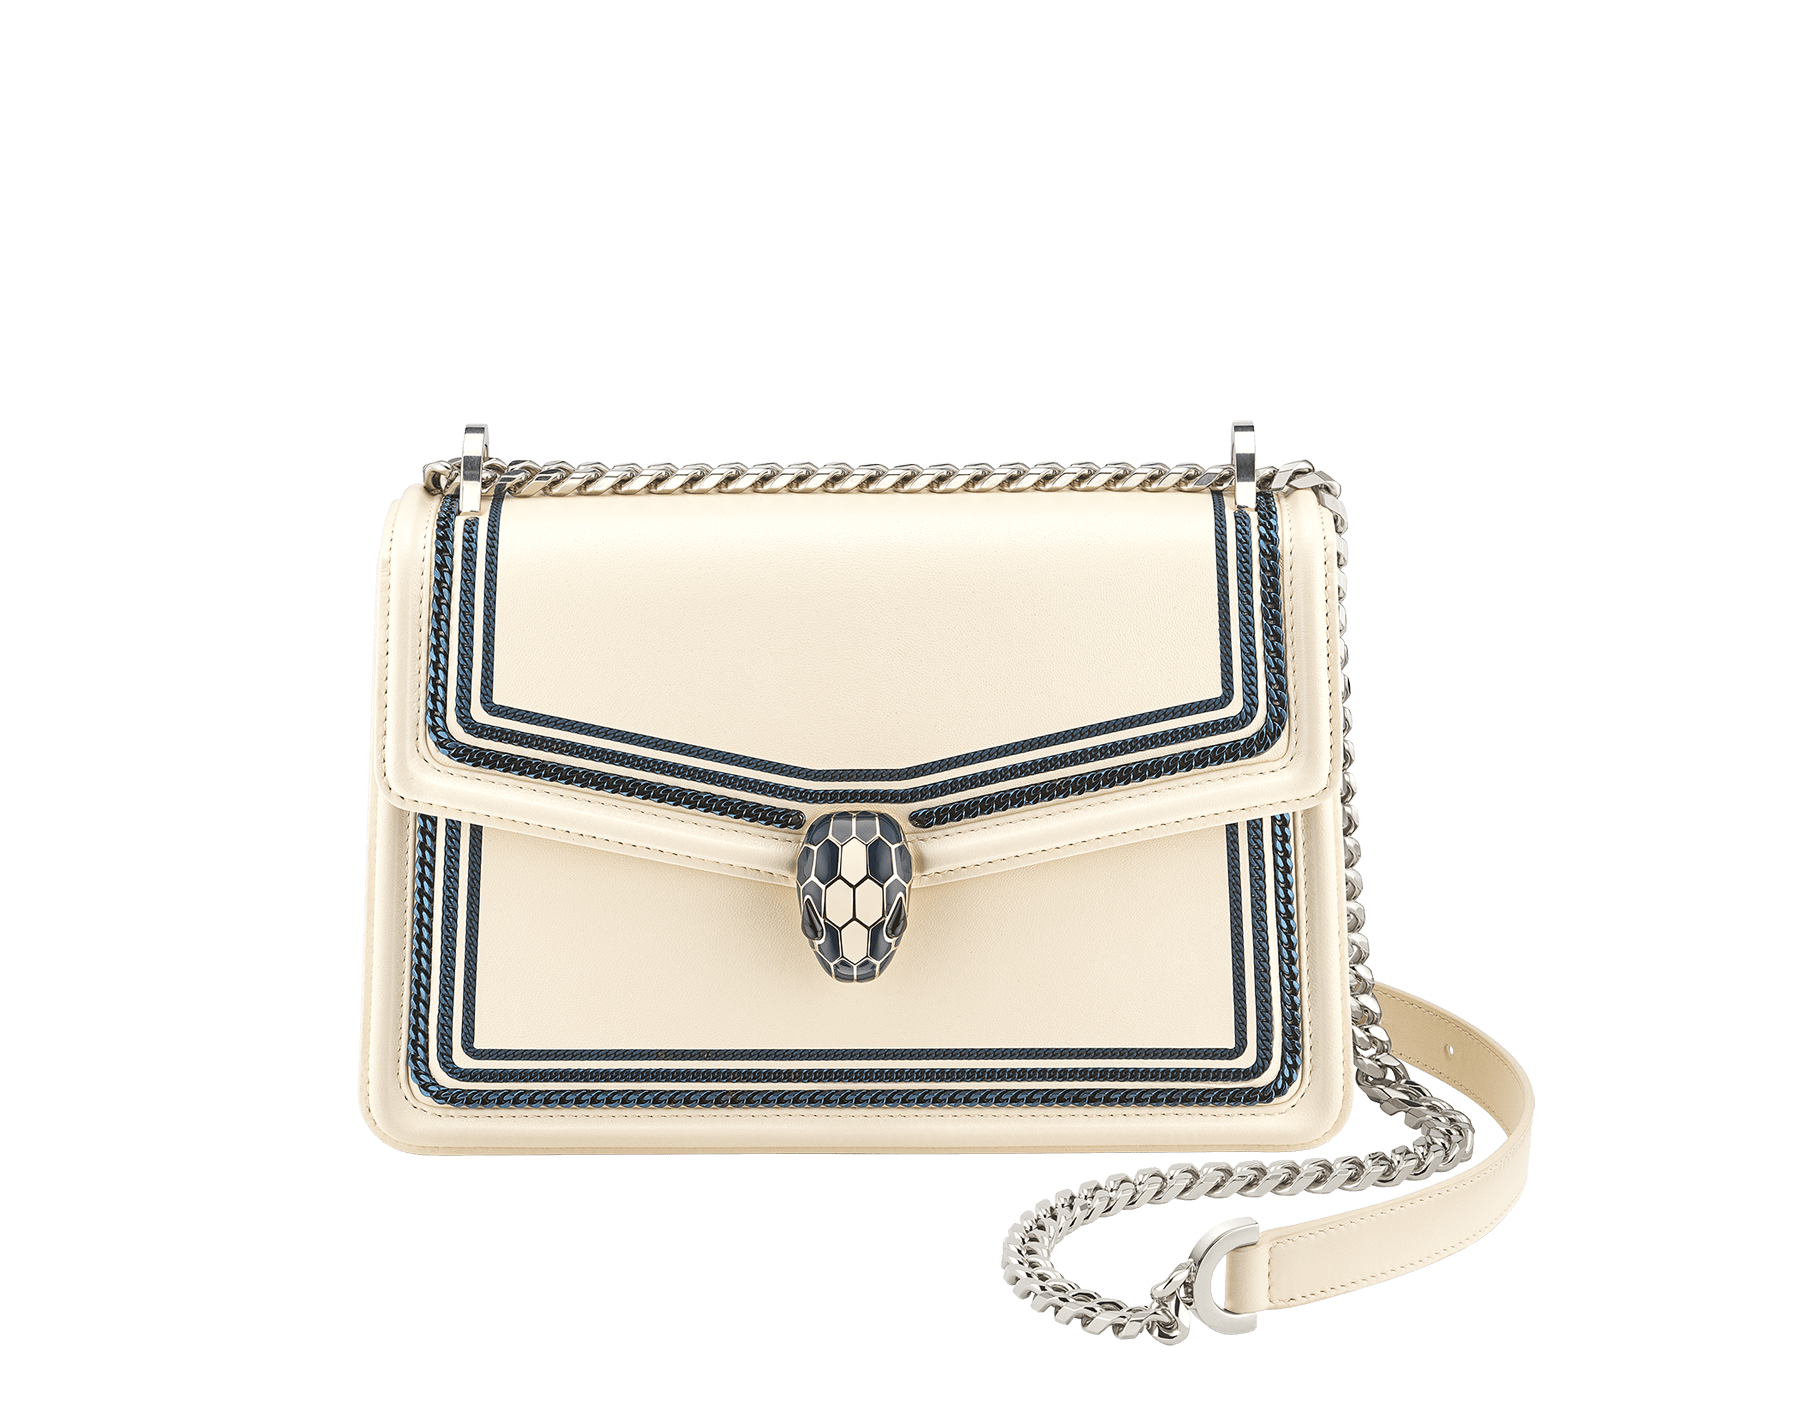 """""""Serpenti Diamond Blast"""" shoulder bag in Ivory Opal white smooth calf leather, featuring a Teal Topaz green 3-Maxi Chain motif, and an Aquamarine light blue nappa leather internal lining. Tempting snakehead closure in palladium-plated brass, embellished with Teal Topaz green and Ivory Opal white enamel, and black onyx eyes. 291173 image 2"""